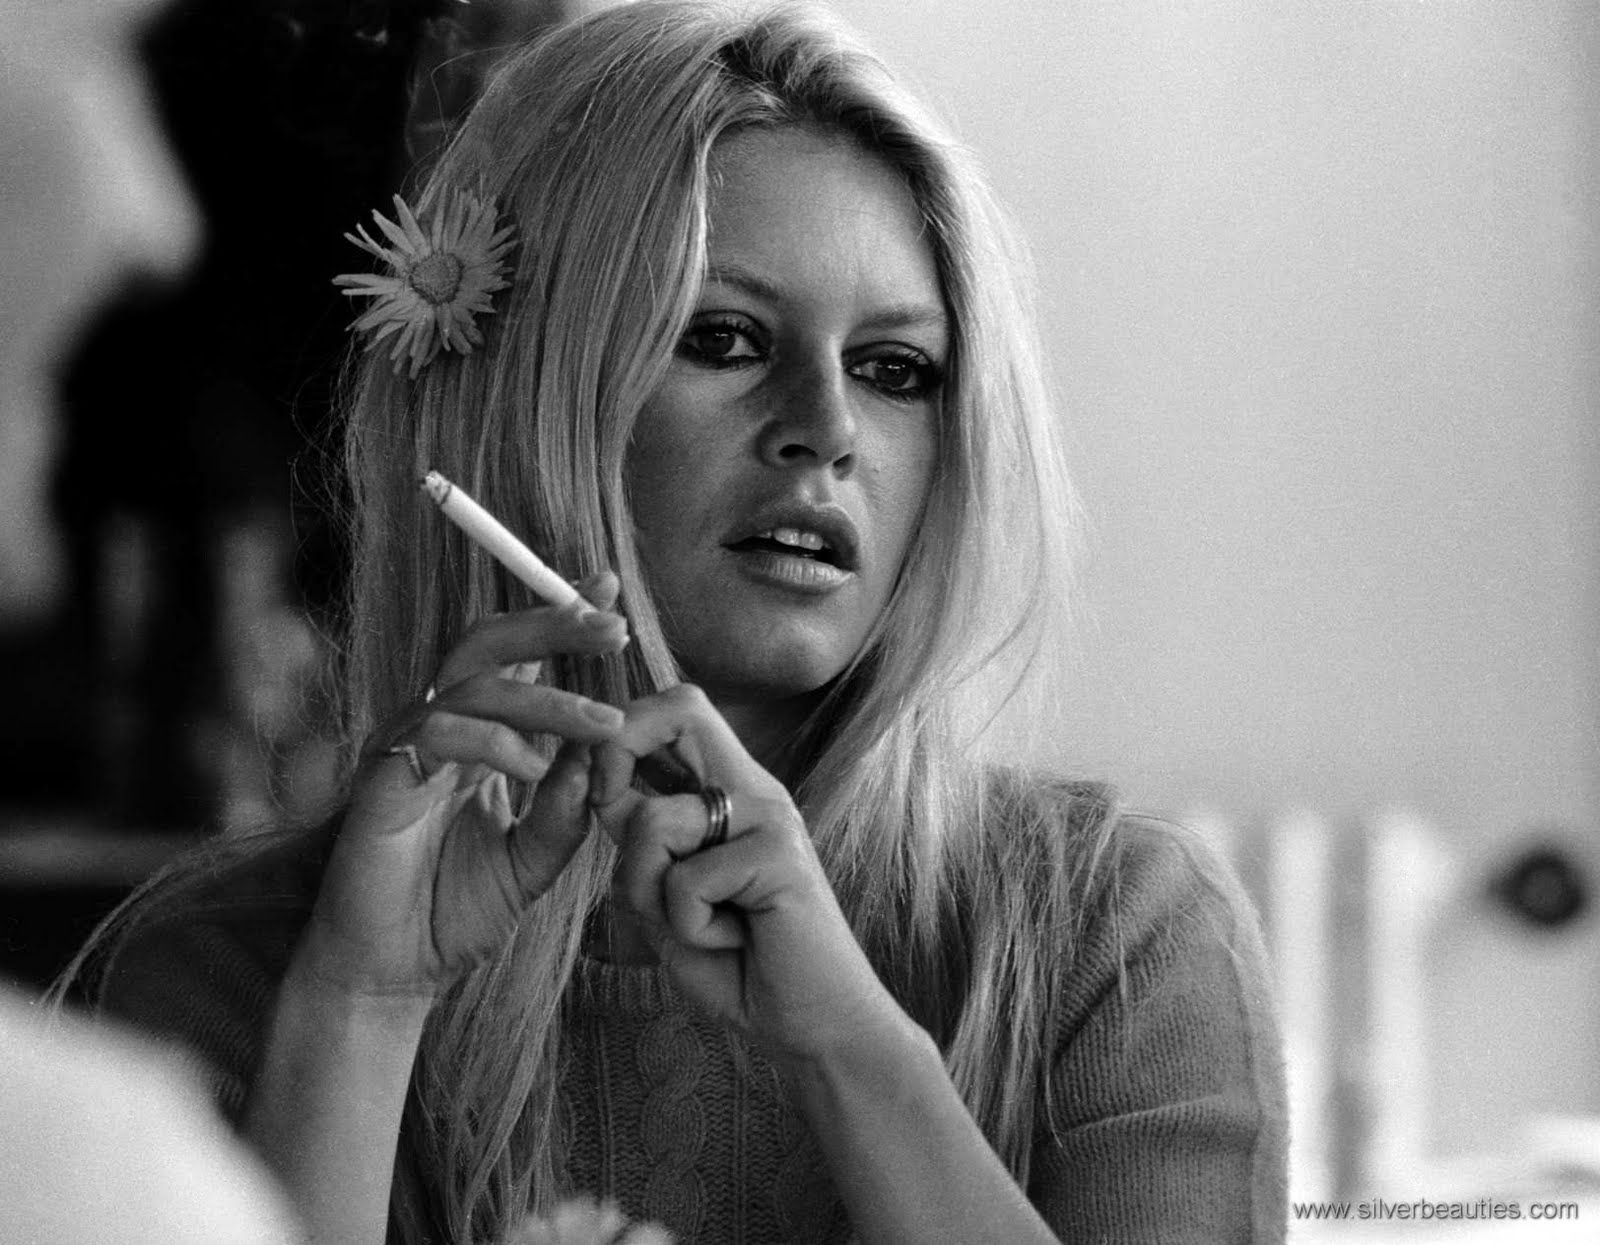 brigitte bardot 2016brigitte bardot 2016, brigitte bardot одежда, brigitte bardot la madrague, brigitte bardot 2017, brigitte bardot gif, brigitte bardot vk, brigitte bardot now, brigitte bardot 2014, brigitte bardot harley davidson, brigitte bardot la madrague перевод, brigitte bardot dress, brigitte bardot makeup, brigitte bardot son, brigitte bardot films, brigitte bardot песни, brigitte bardot fringe, brigitte bardot wikipédia, brigitte bardot quotes, brigitte bardot vom ditrikh, brigitte bardo группа